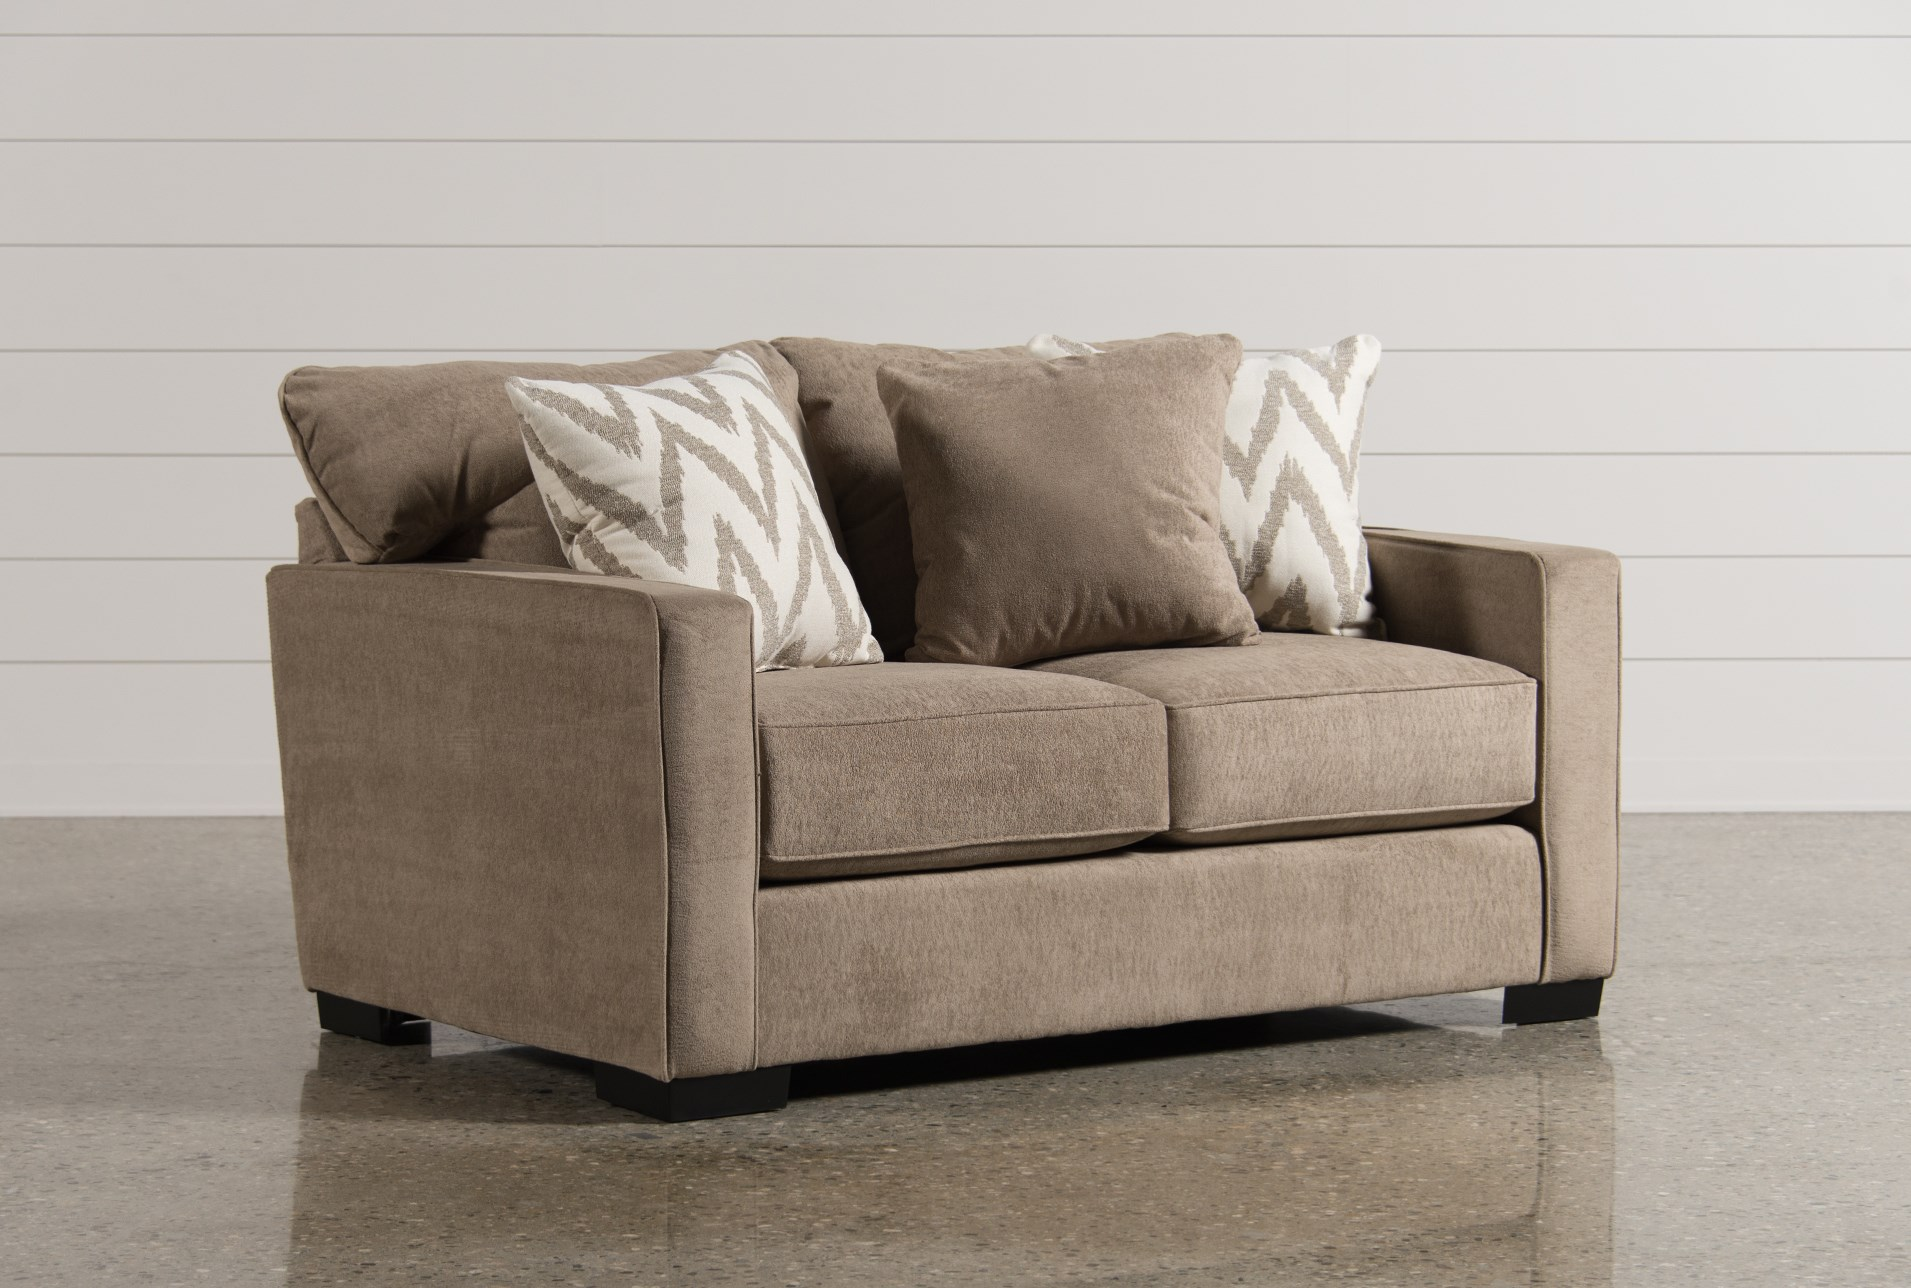 Pearson Loveseat Qty 1 Has Been Successfully Added To Your Cart